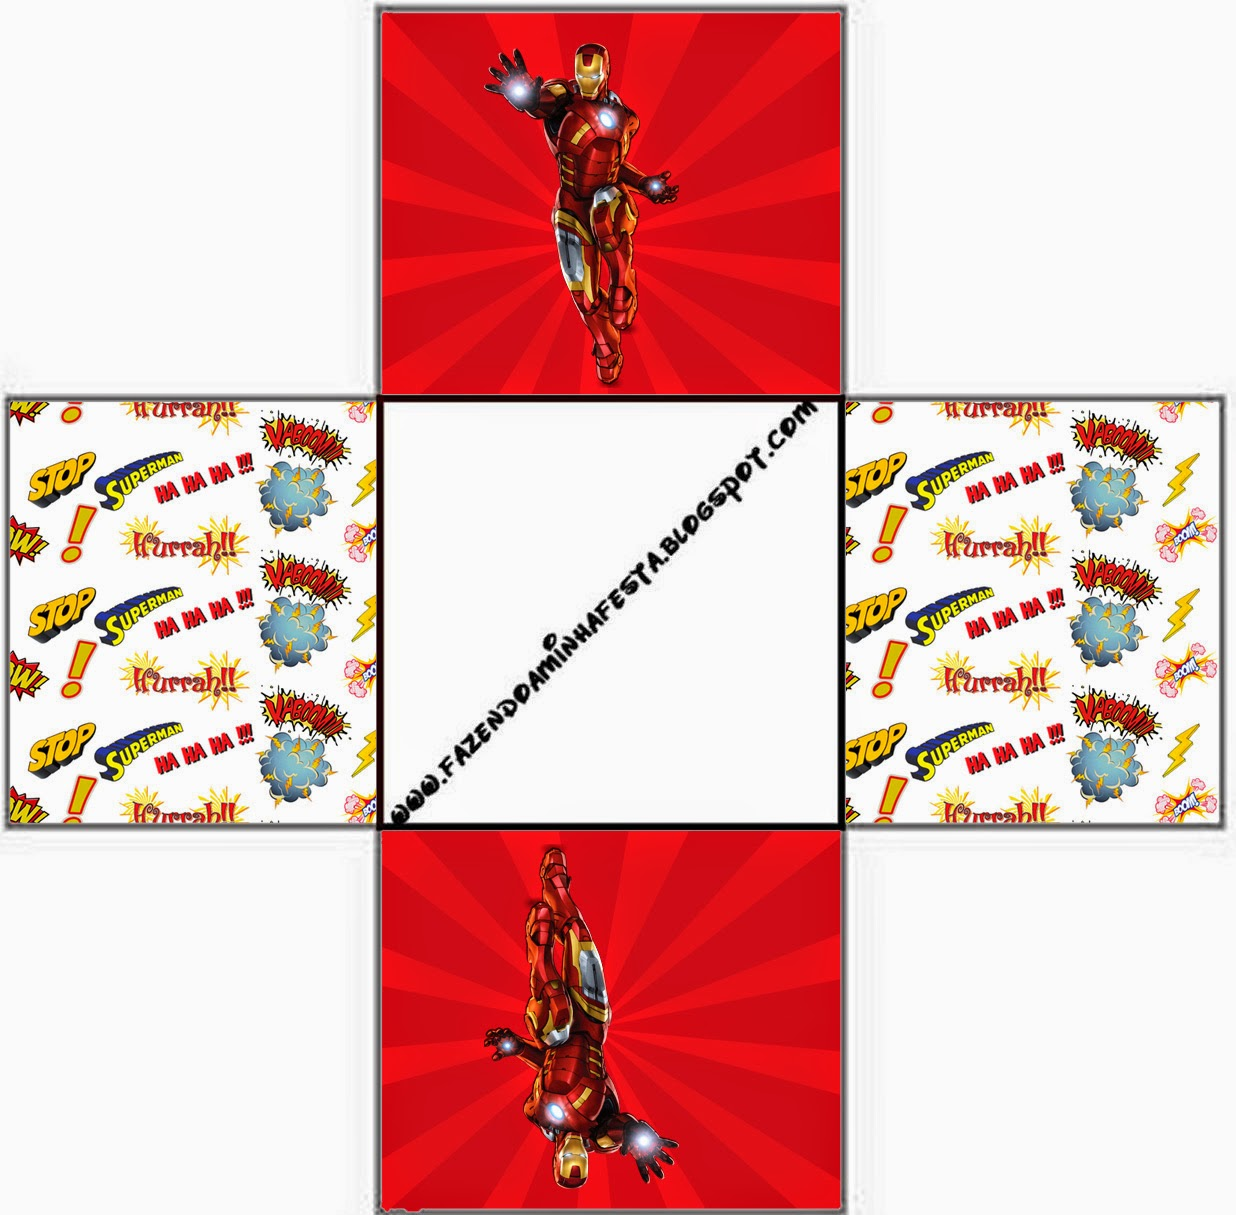 Iron Man: Free Printable Boxes. - Oh My Fiesta! for Geeks